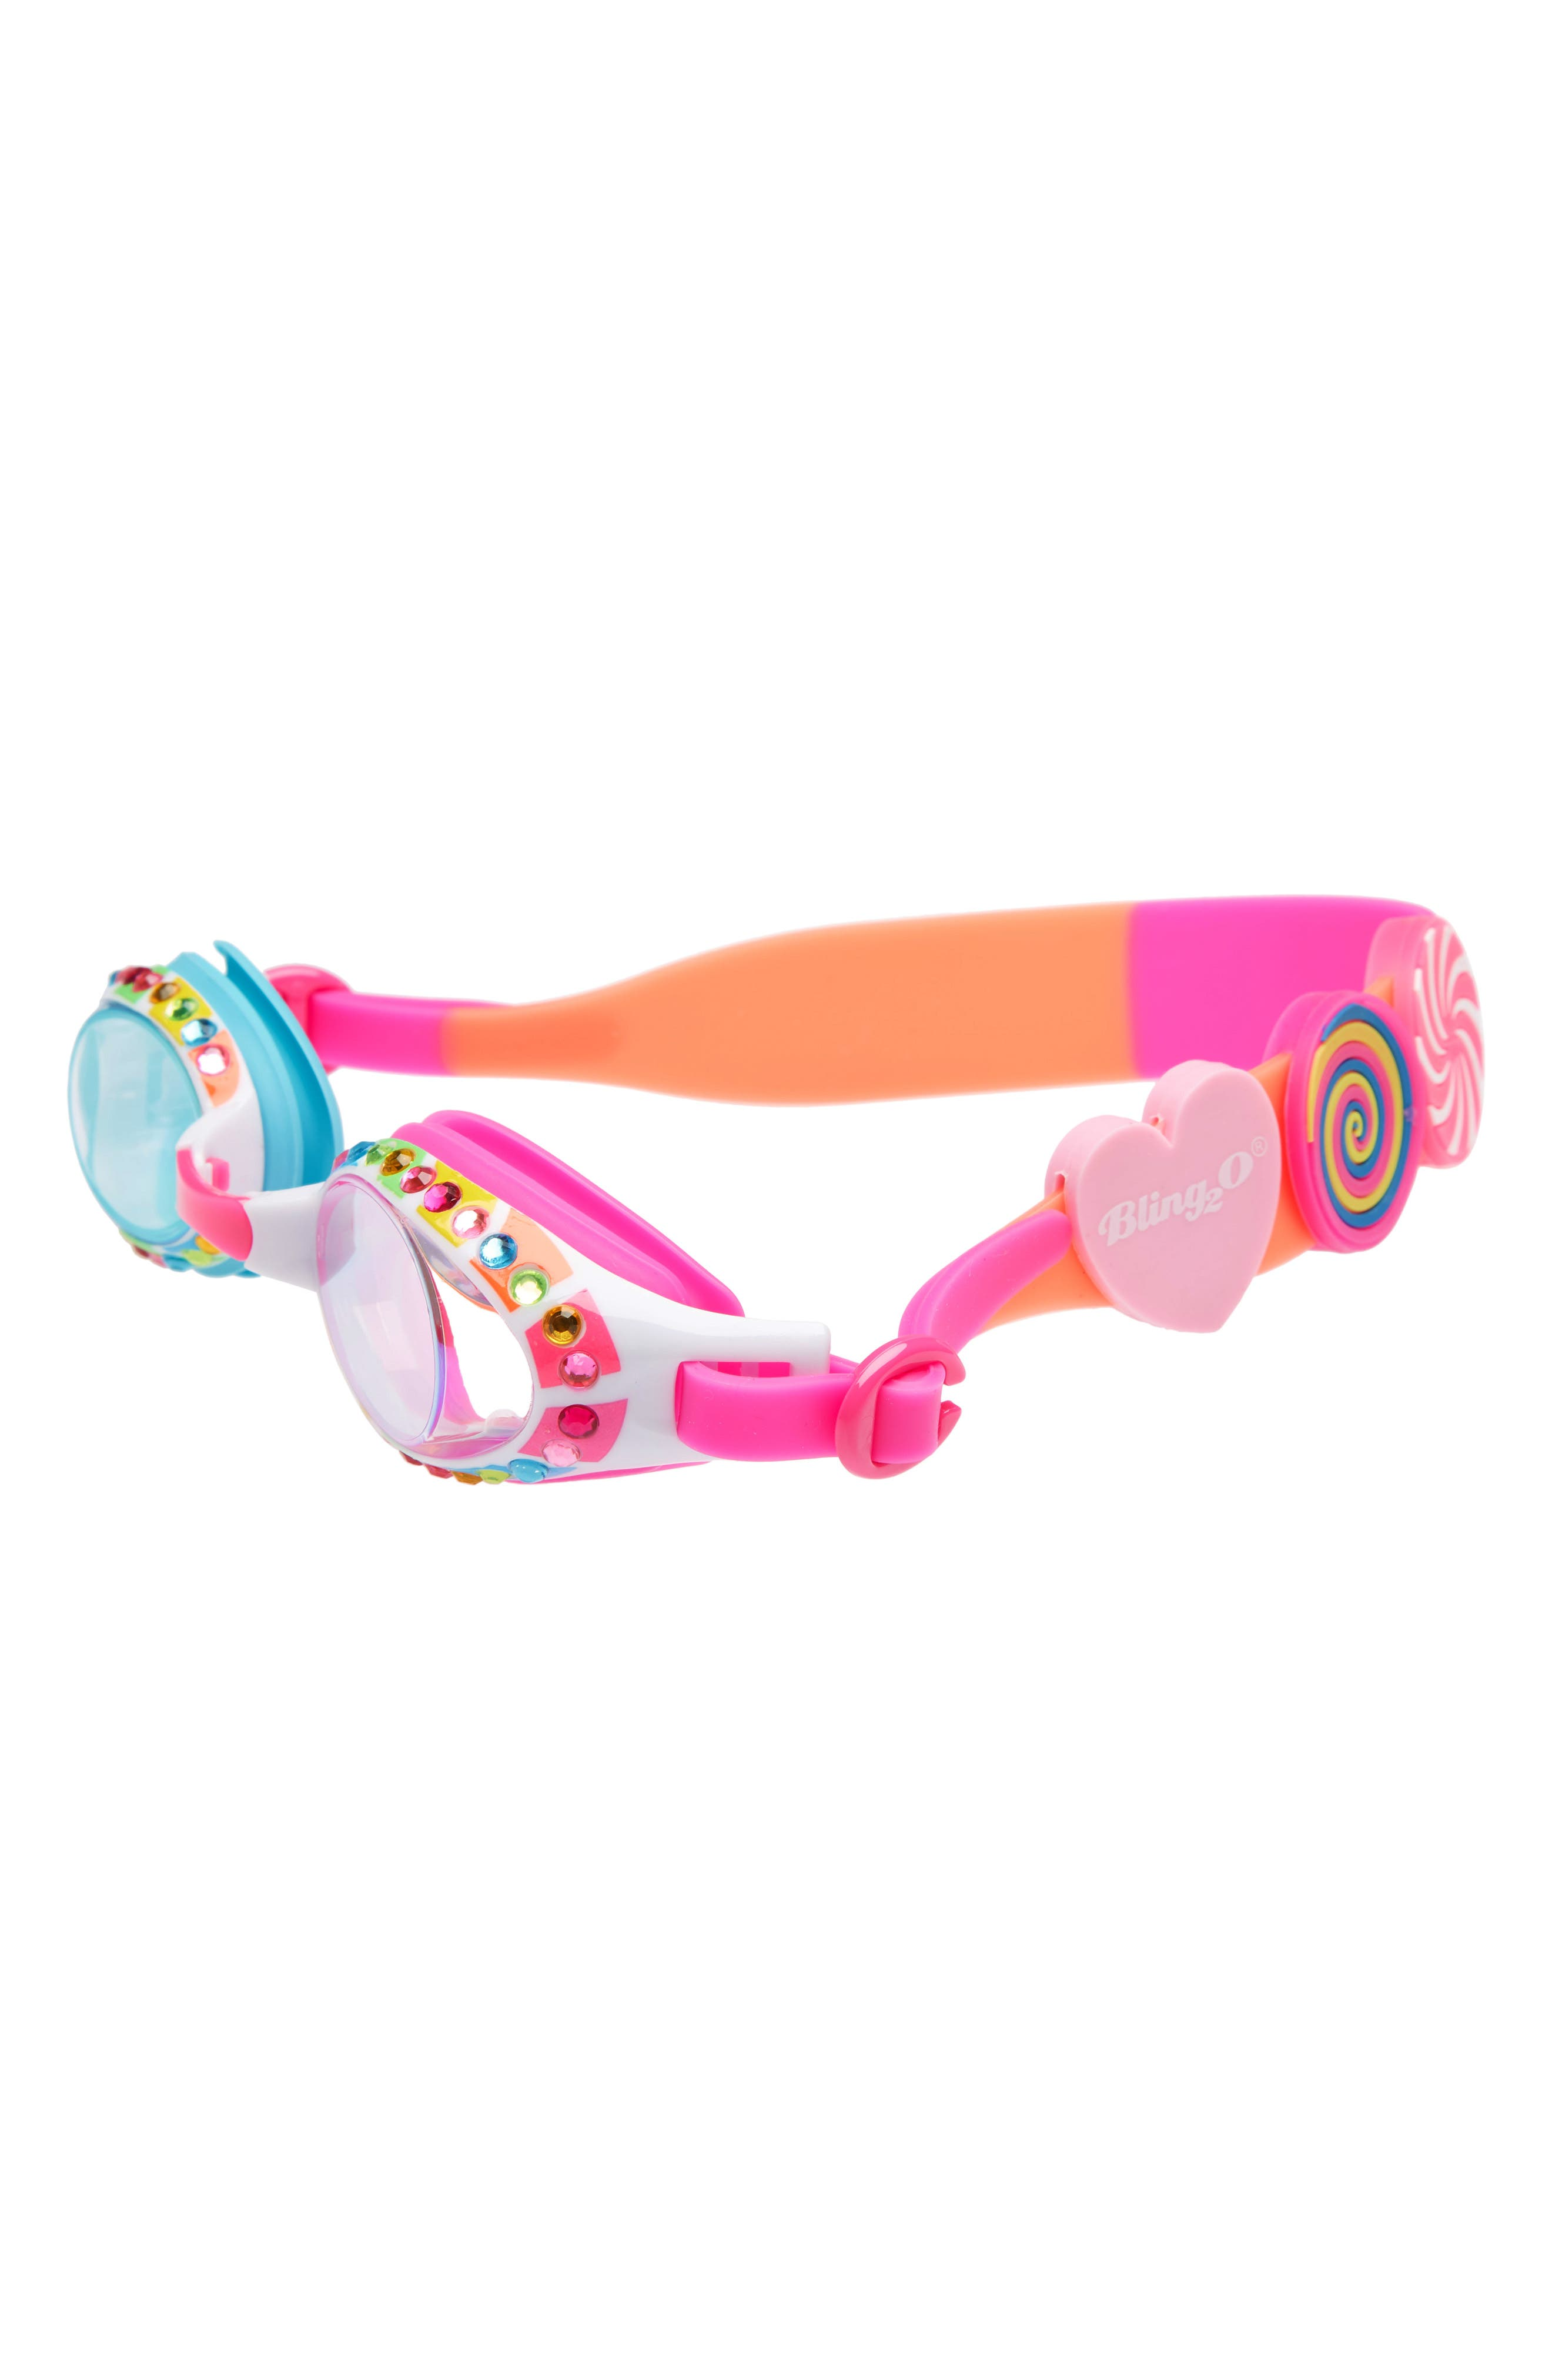 Main Image - Bling2o Lolli Poppins Swim Goggles (Girls)